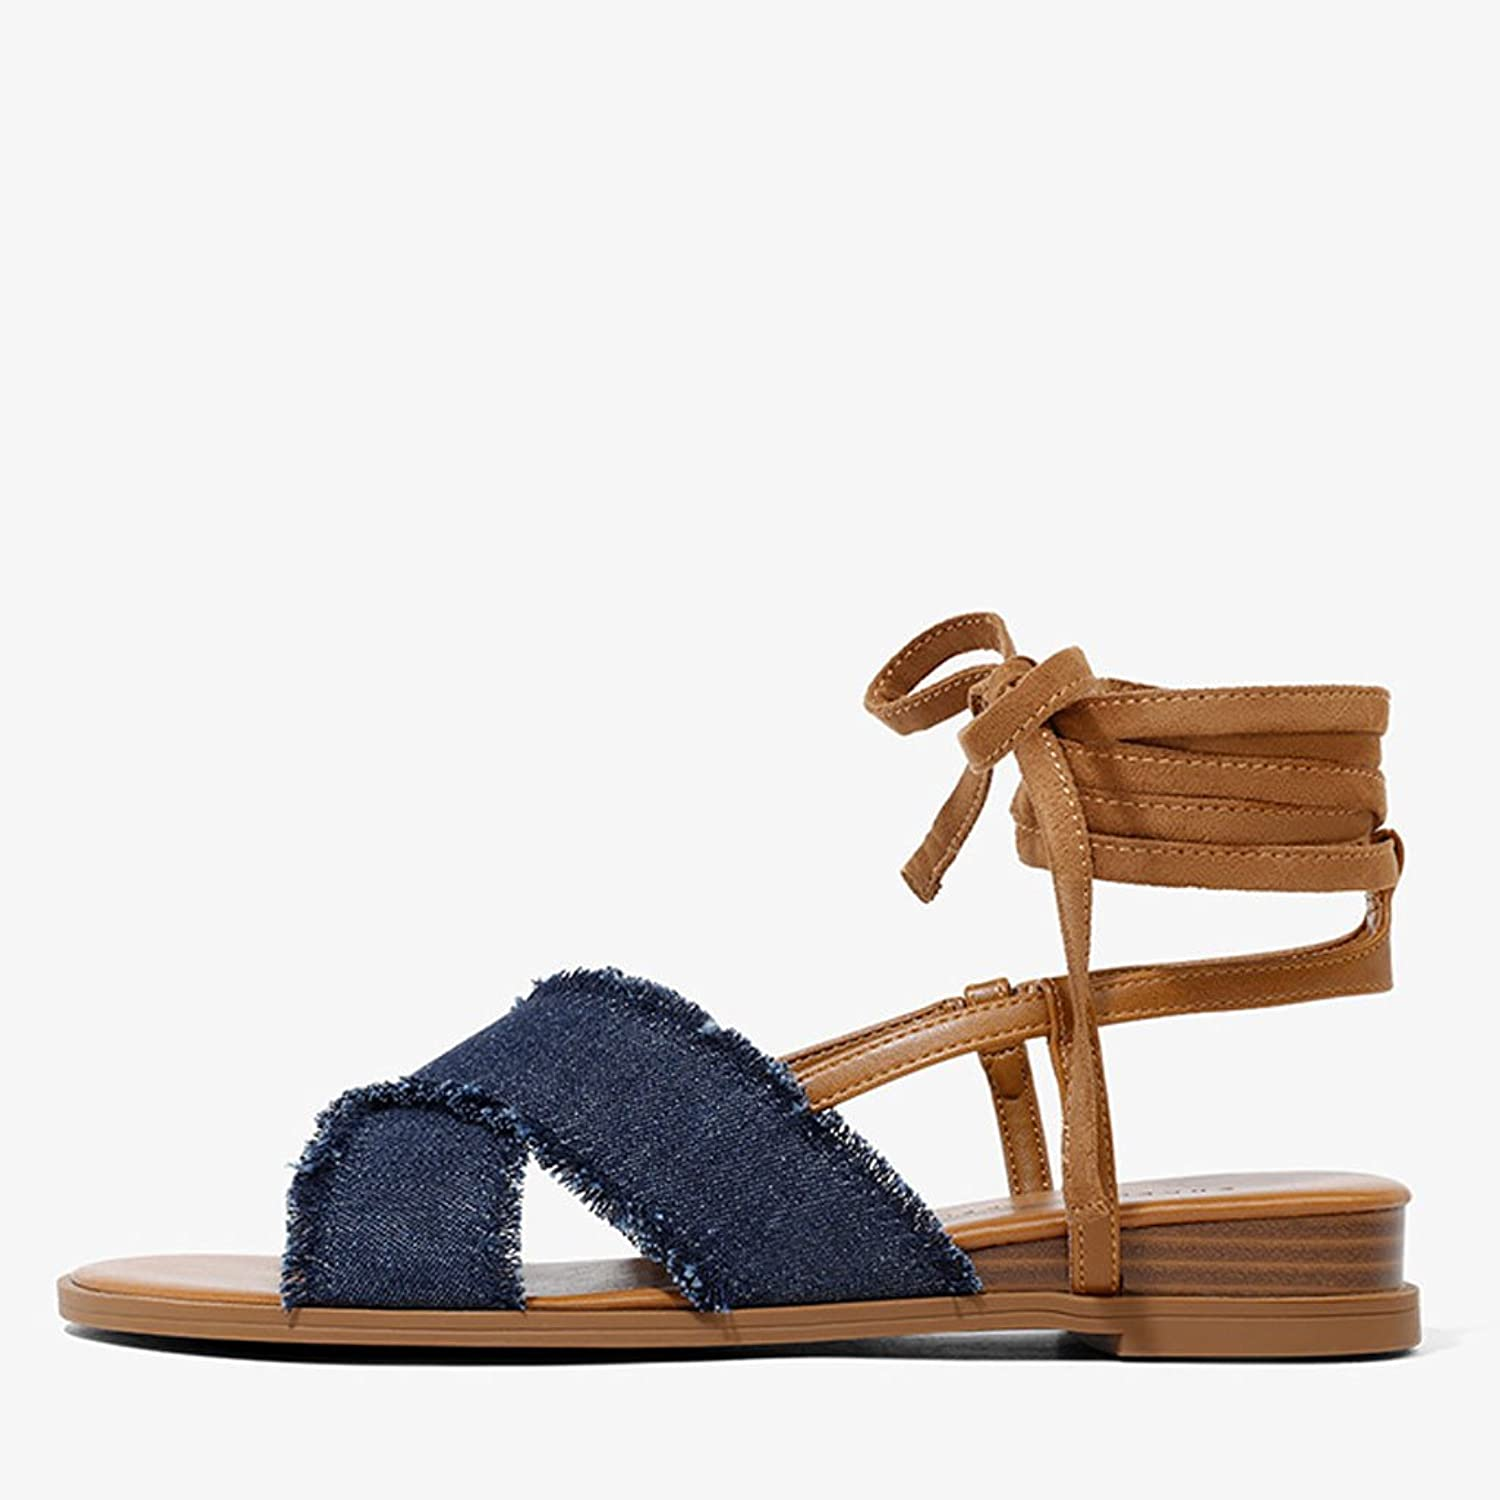 LIUXUEPING Exotic Wind Low with Open-Toe Sandals Shallow Mouth Fashion Sandals Cross Straps Canvas Roman shoes